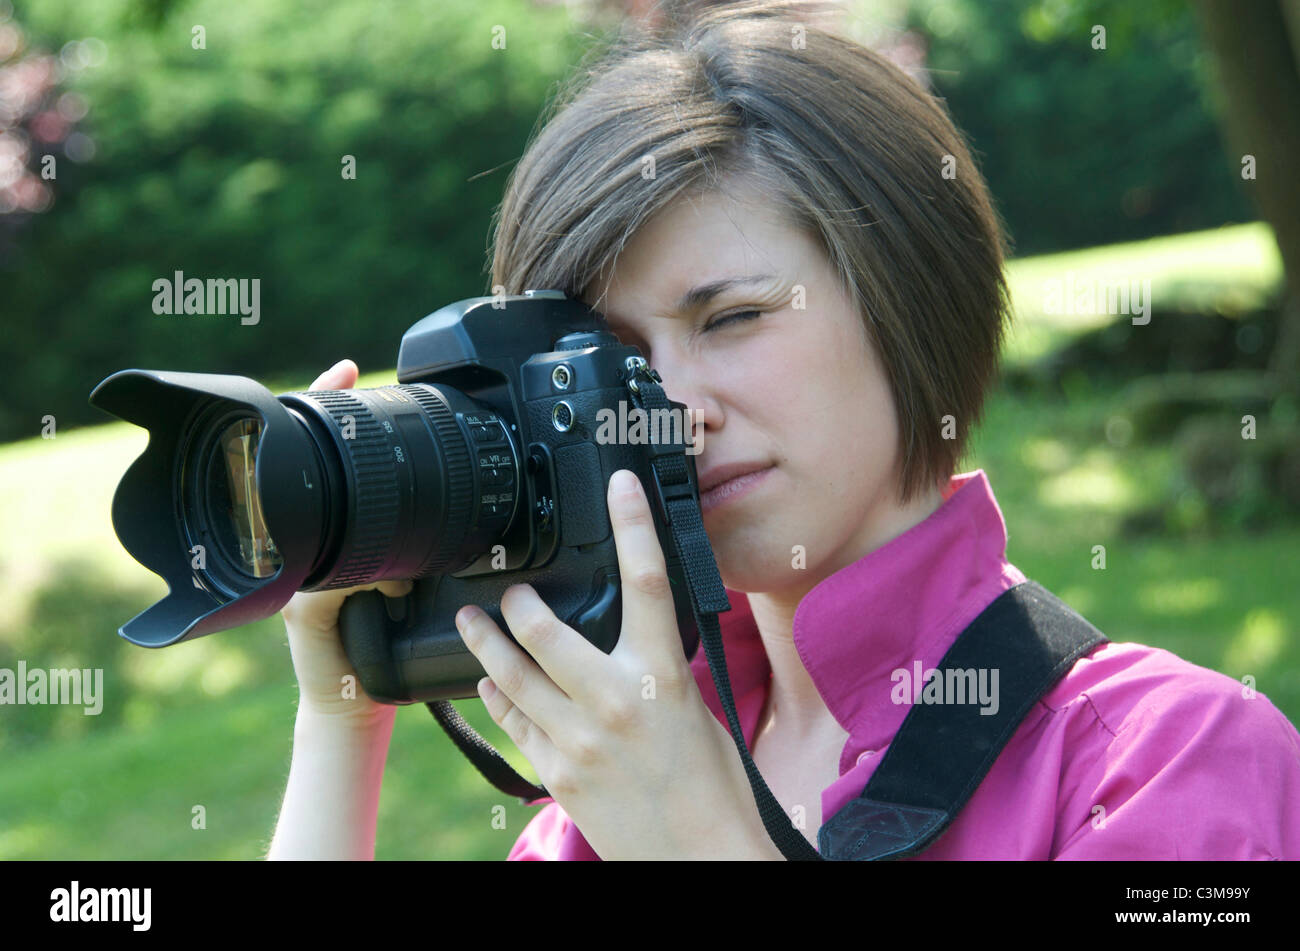 Young woman / teen taking photo with a digital camera (dslr) - Stock Image